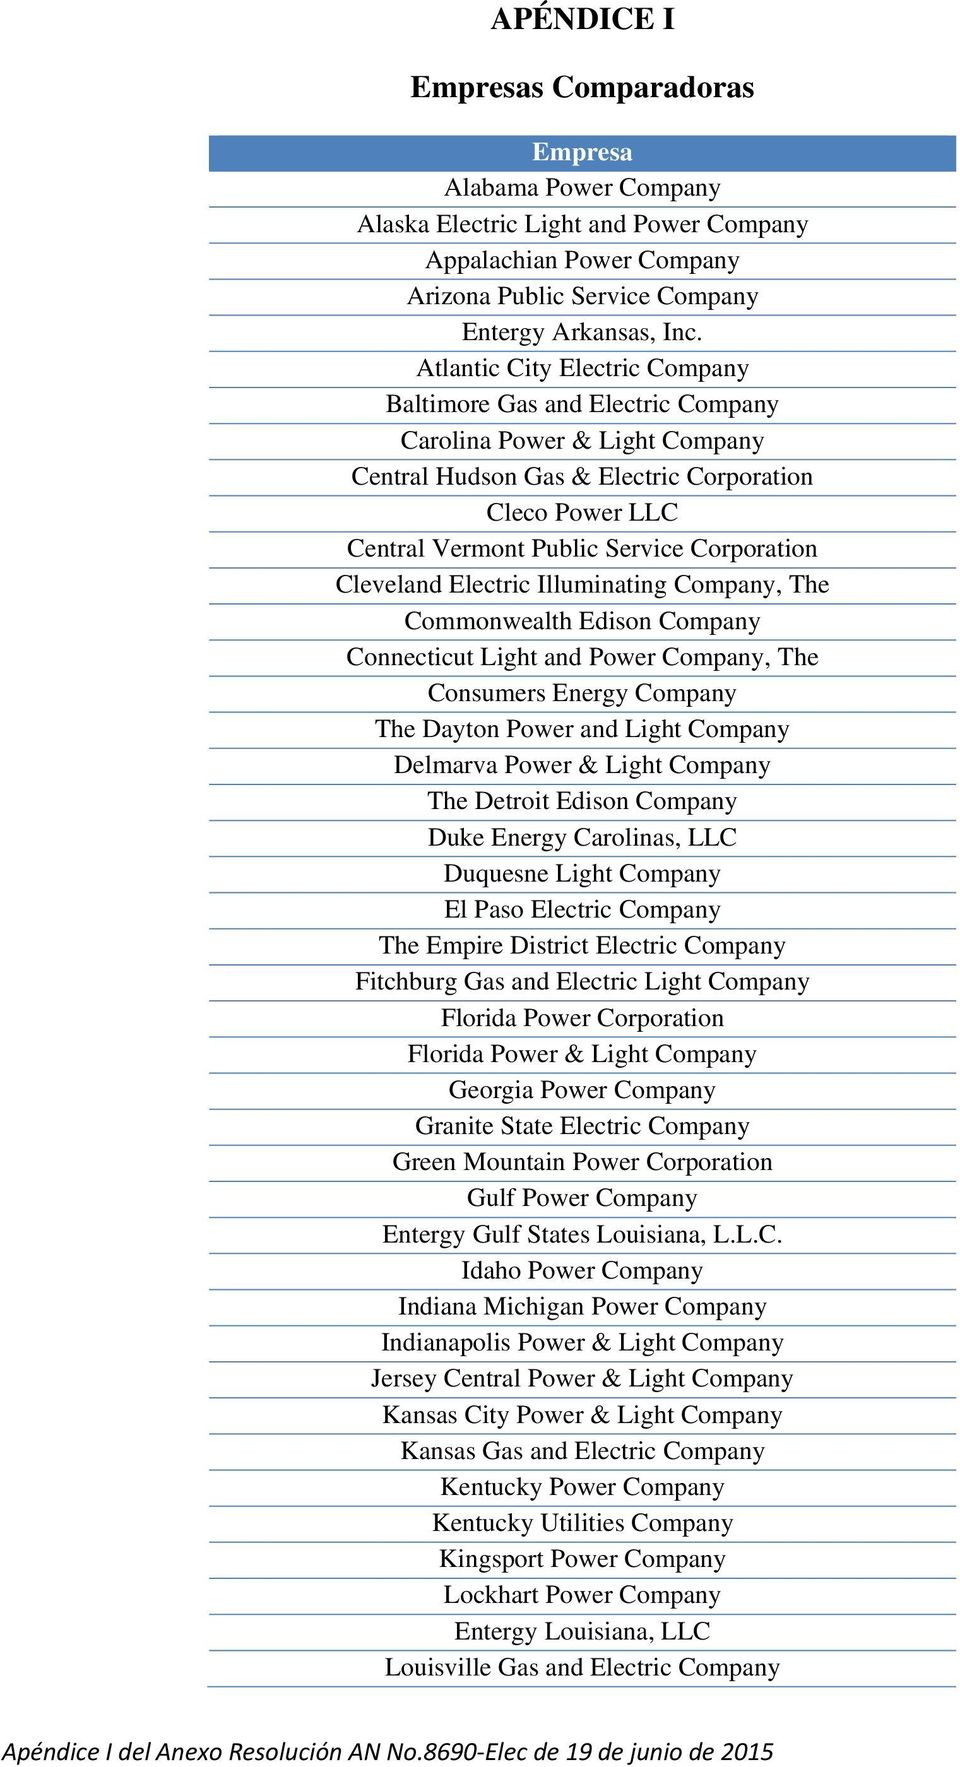 Cleveland Electric Illuminating Company, The Commonwealth Edison Company Connecticut Light and Power Company, The Consumers Energy Company The Dayton Power and Light Company Delmarva Power & Light